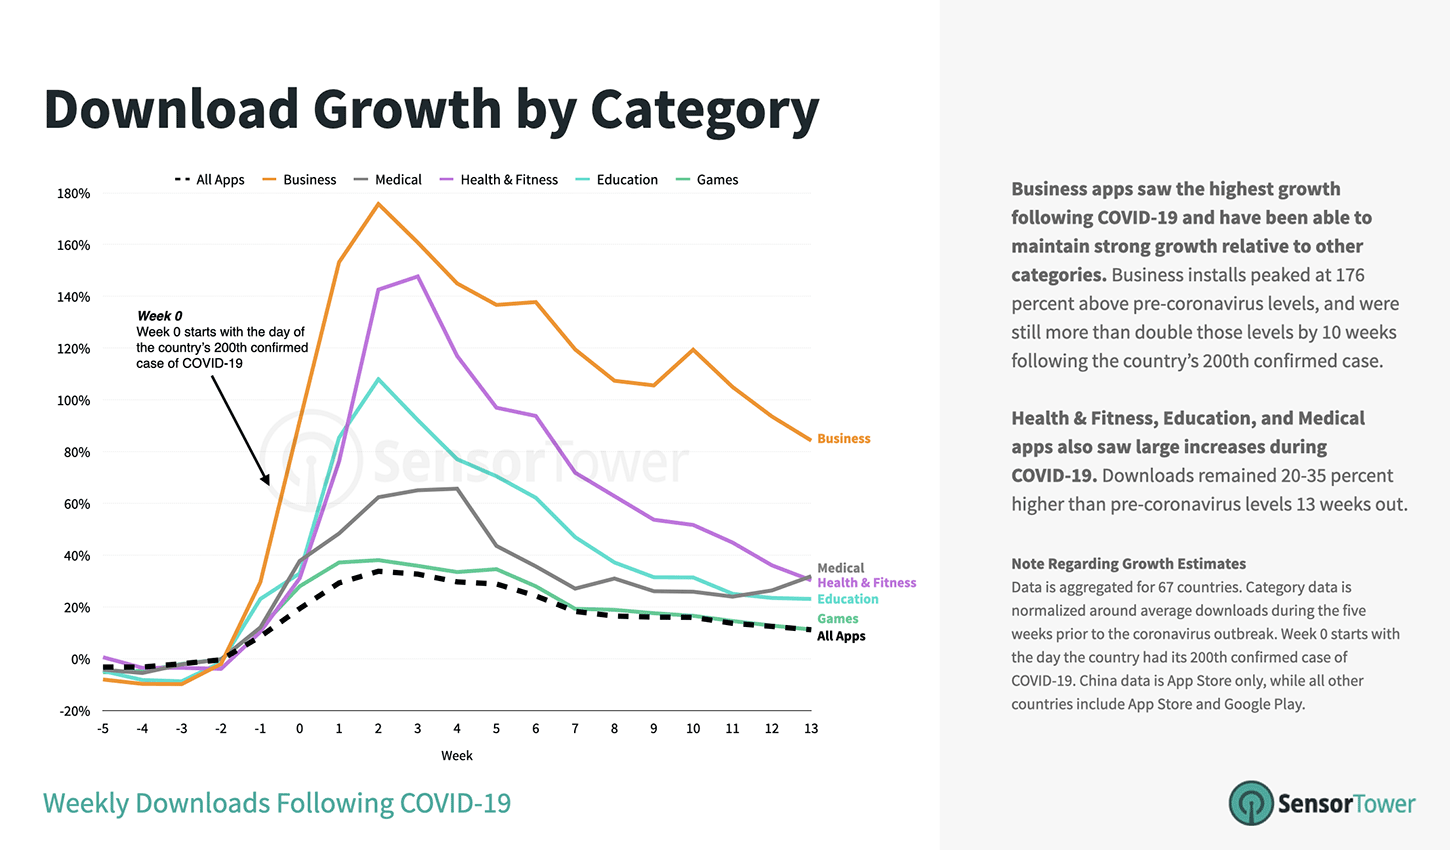 Chart showing the growth of App Store categories following 200th COVID-19 case